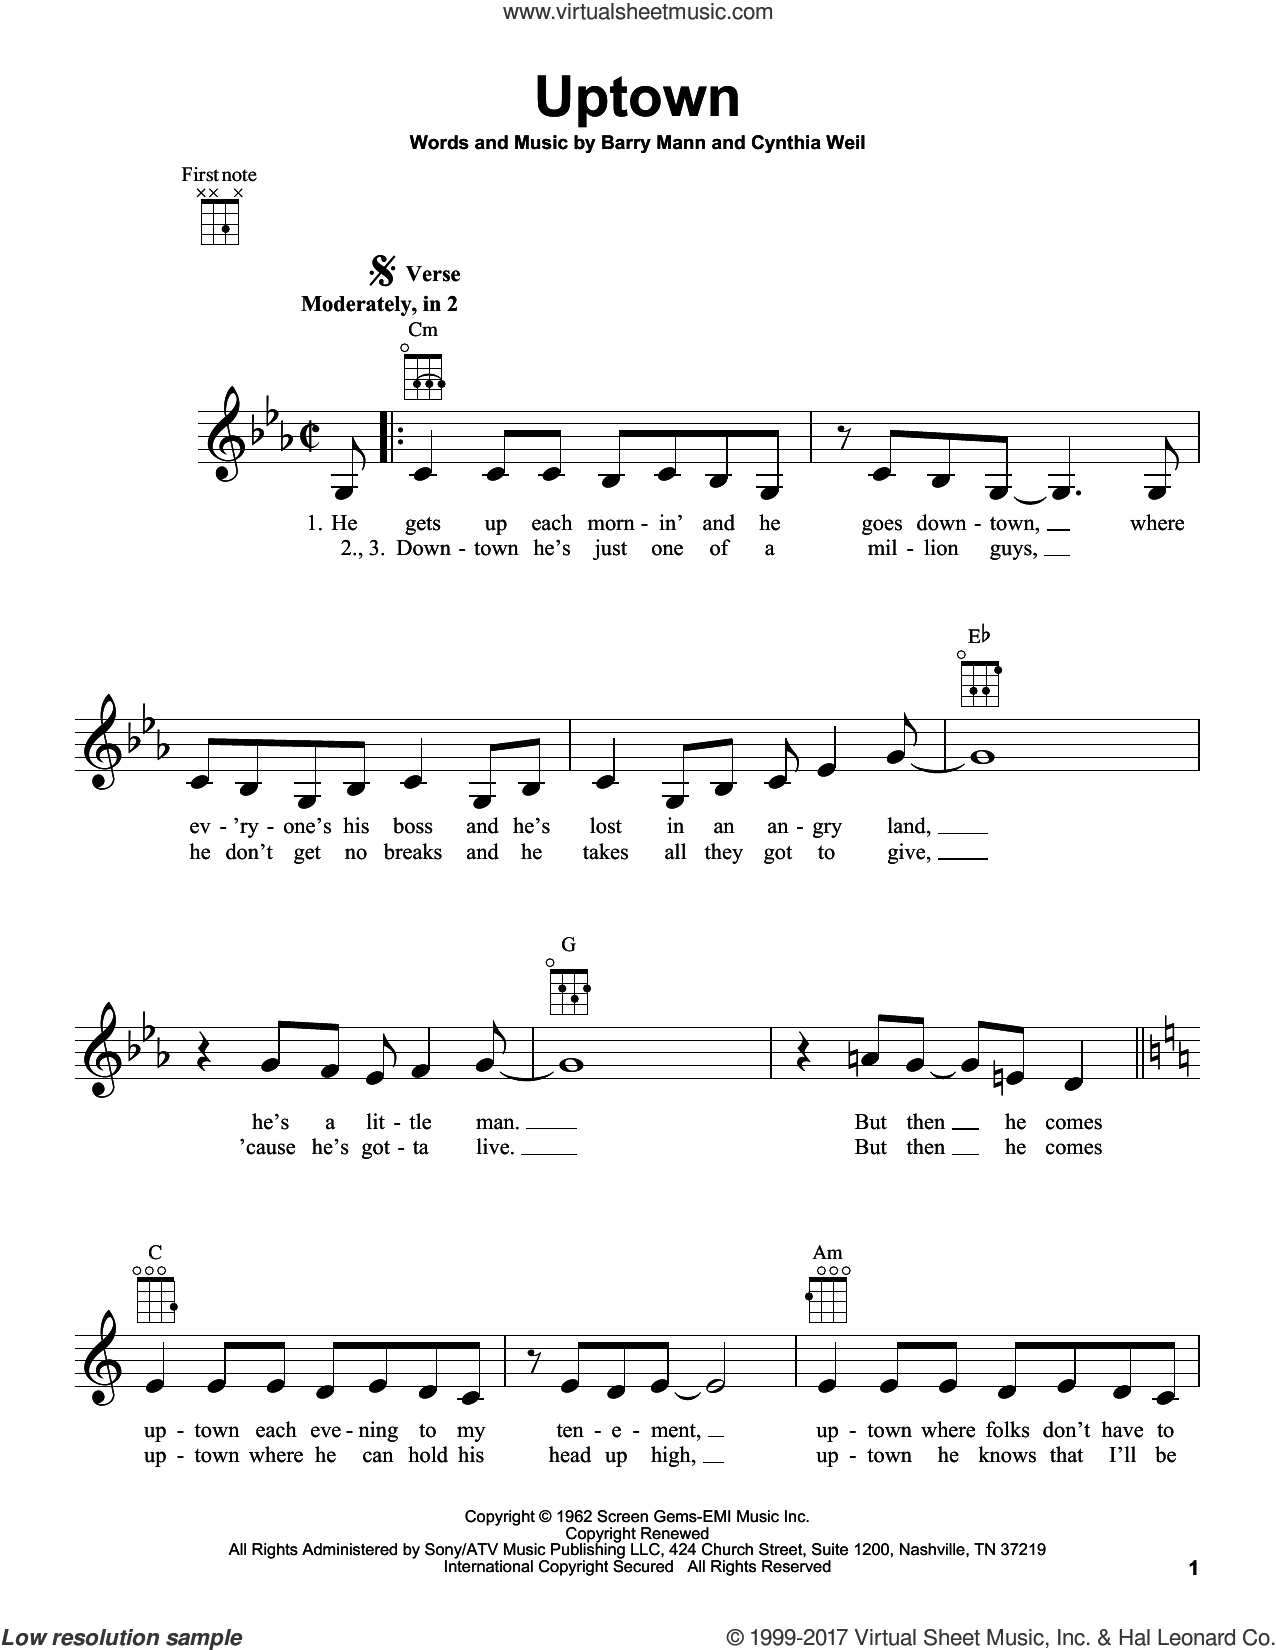 Uptown sheet music for ukulele by Carole King, Barry Mann and Cynthia Weil, intermediate